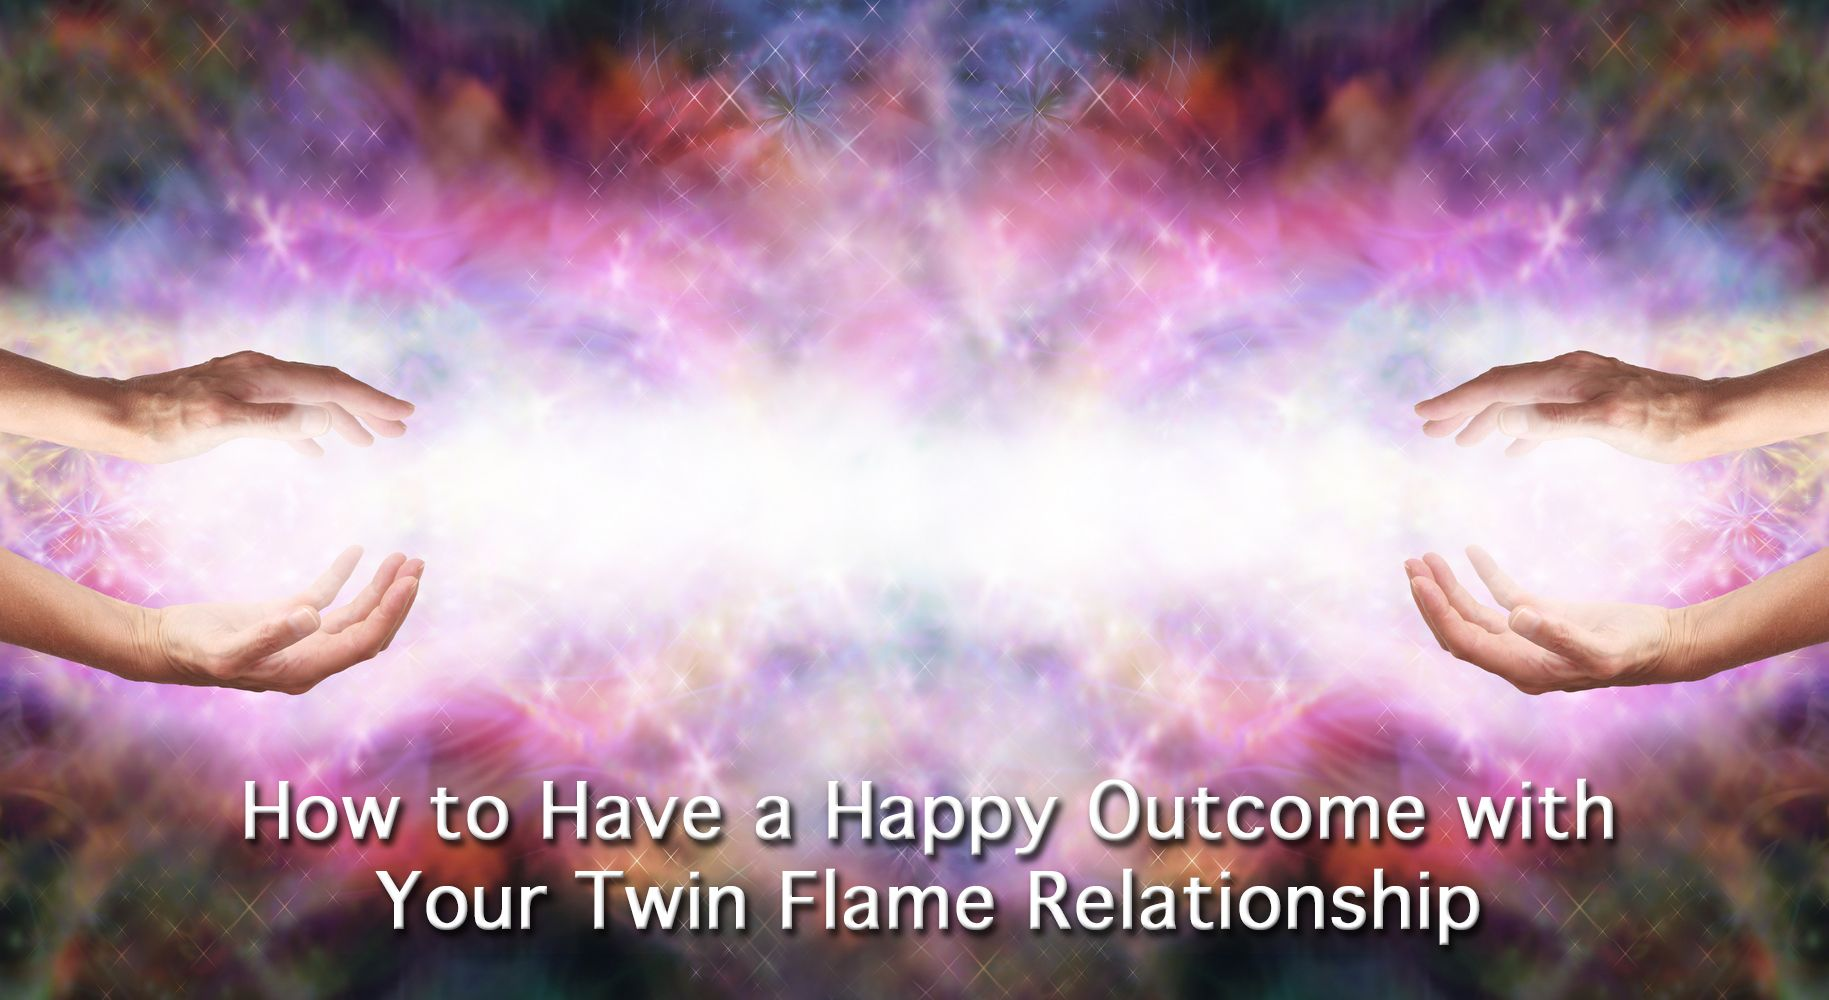 What Causes the Pain with Twin Flame Relationships